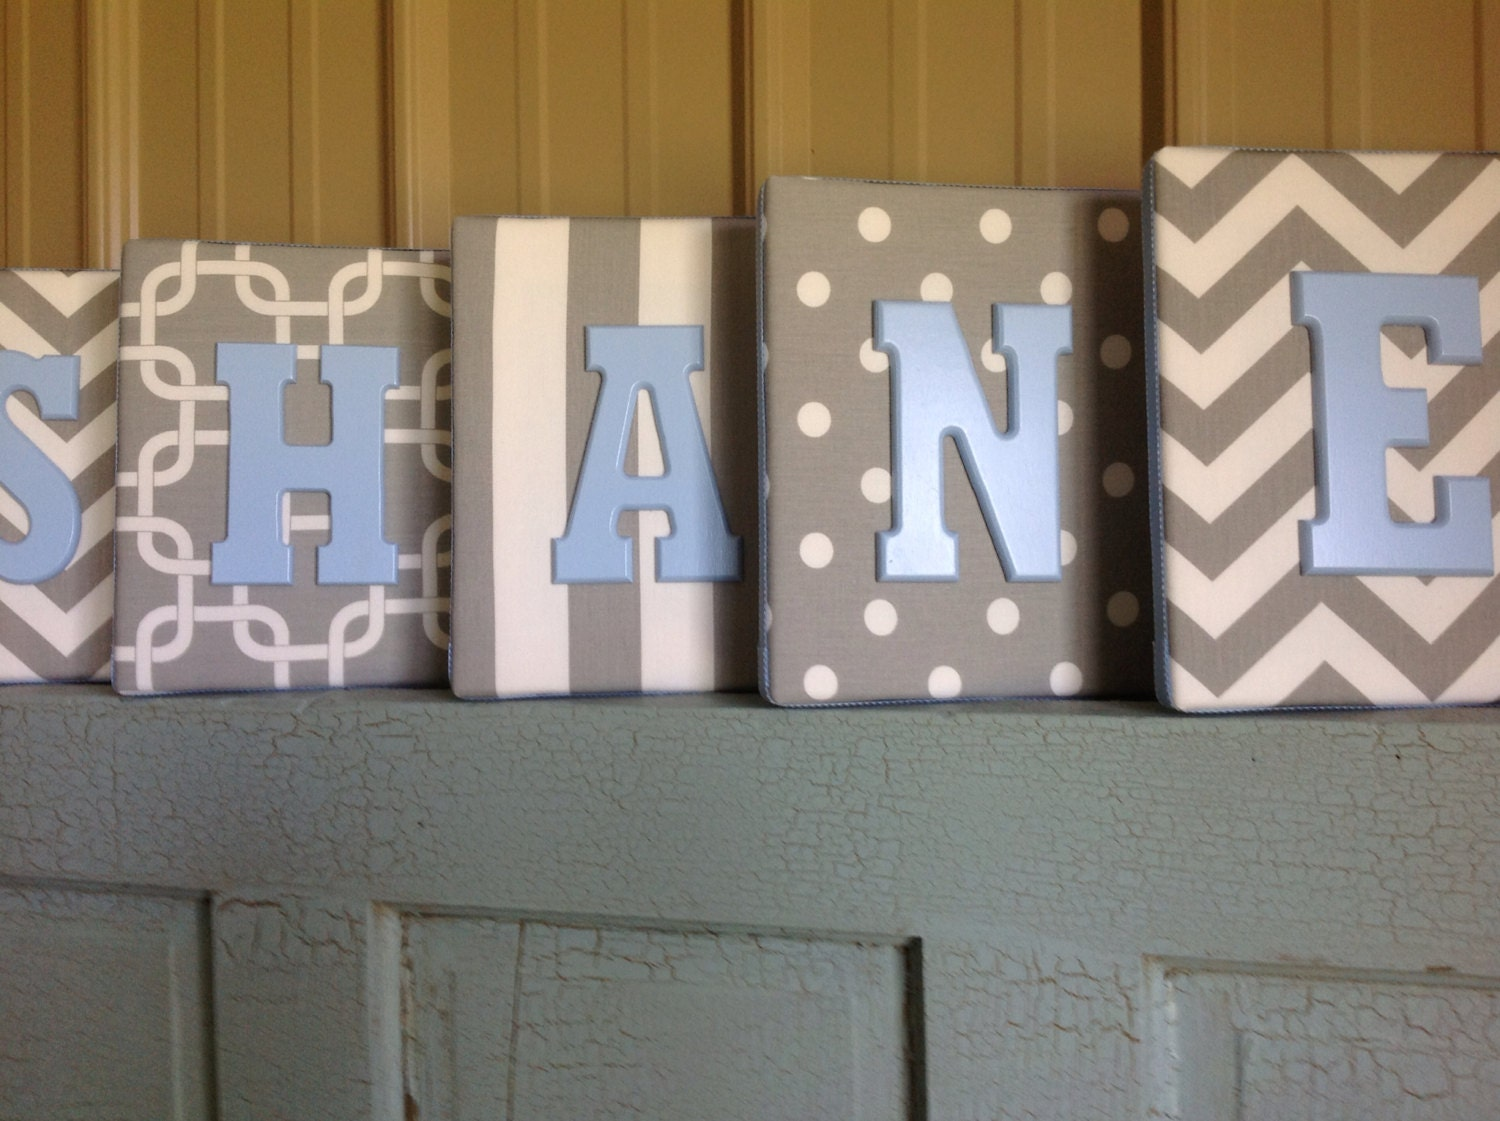 8x10 upholstered letter plaque nursery name decor in gray and. Black Bedroom Furniture Sets. Home Design Ideas